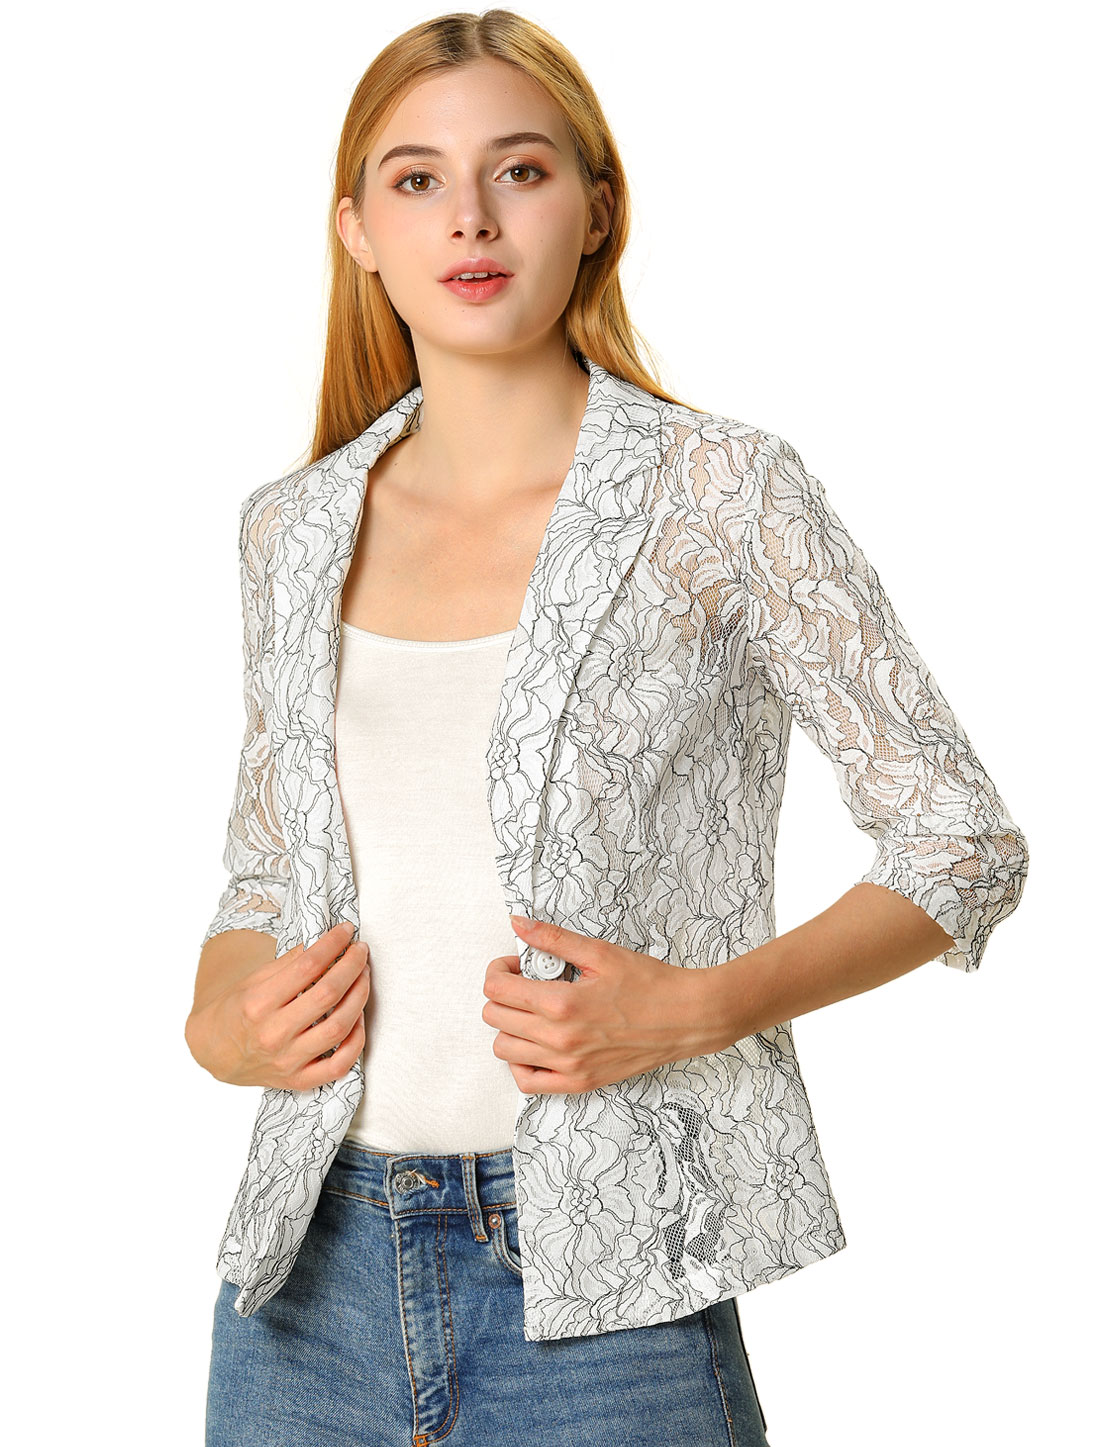 Women's 3/4 Sleeves Notched Lapel One-Button Lace Blazer White XS (US 2)